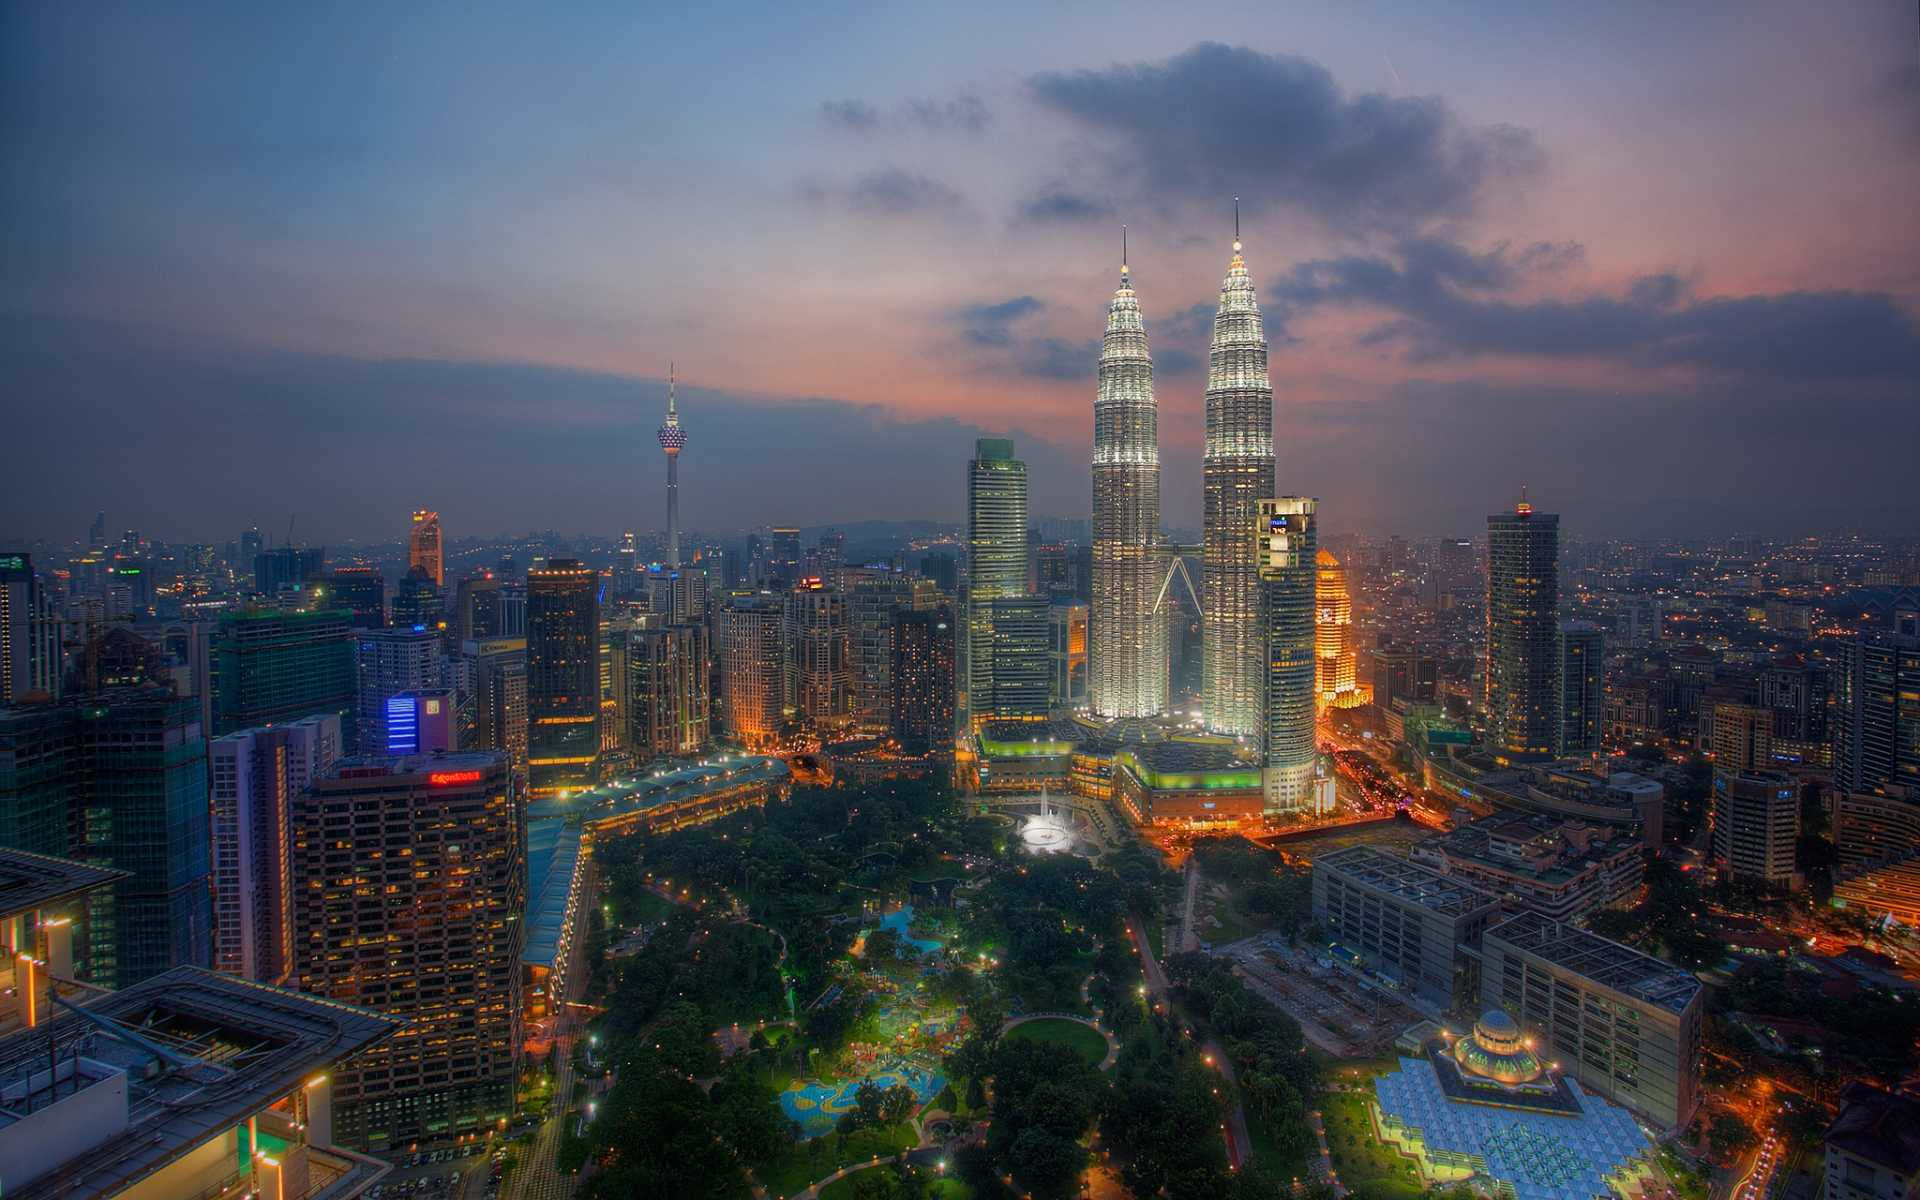 Kuala lumpur wallpapers pictures images for Home wallpaper kl